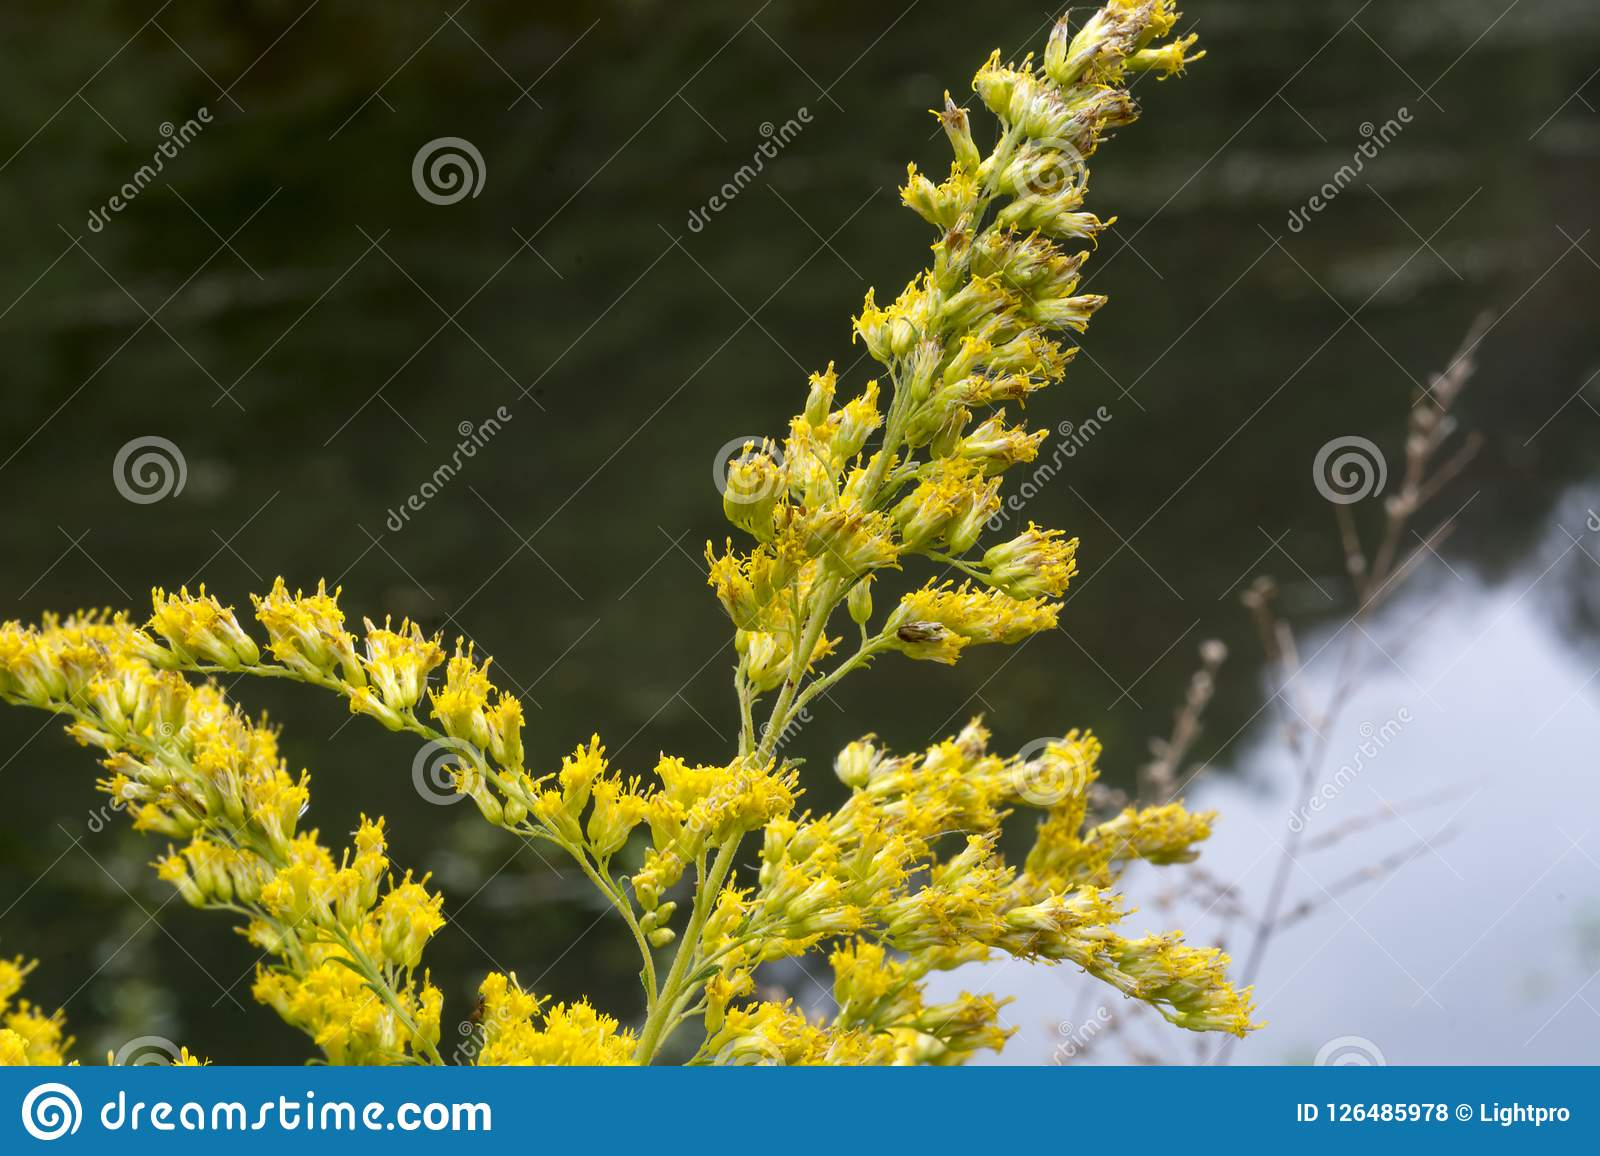 Yellow Stem Of Small Flowers Stock Photo Image Of Next Weed